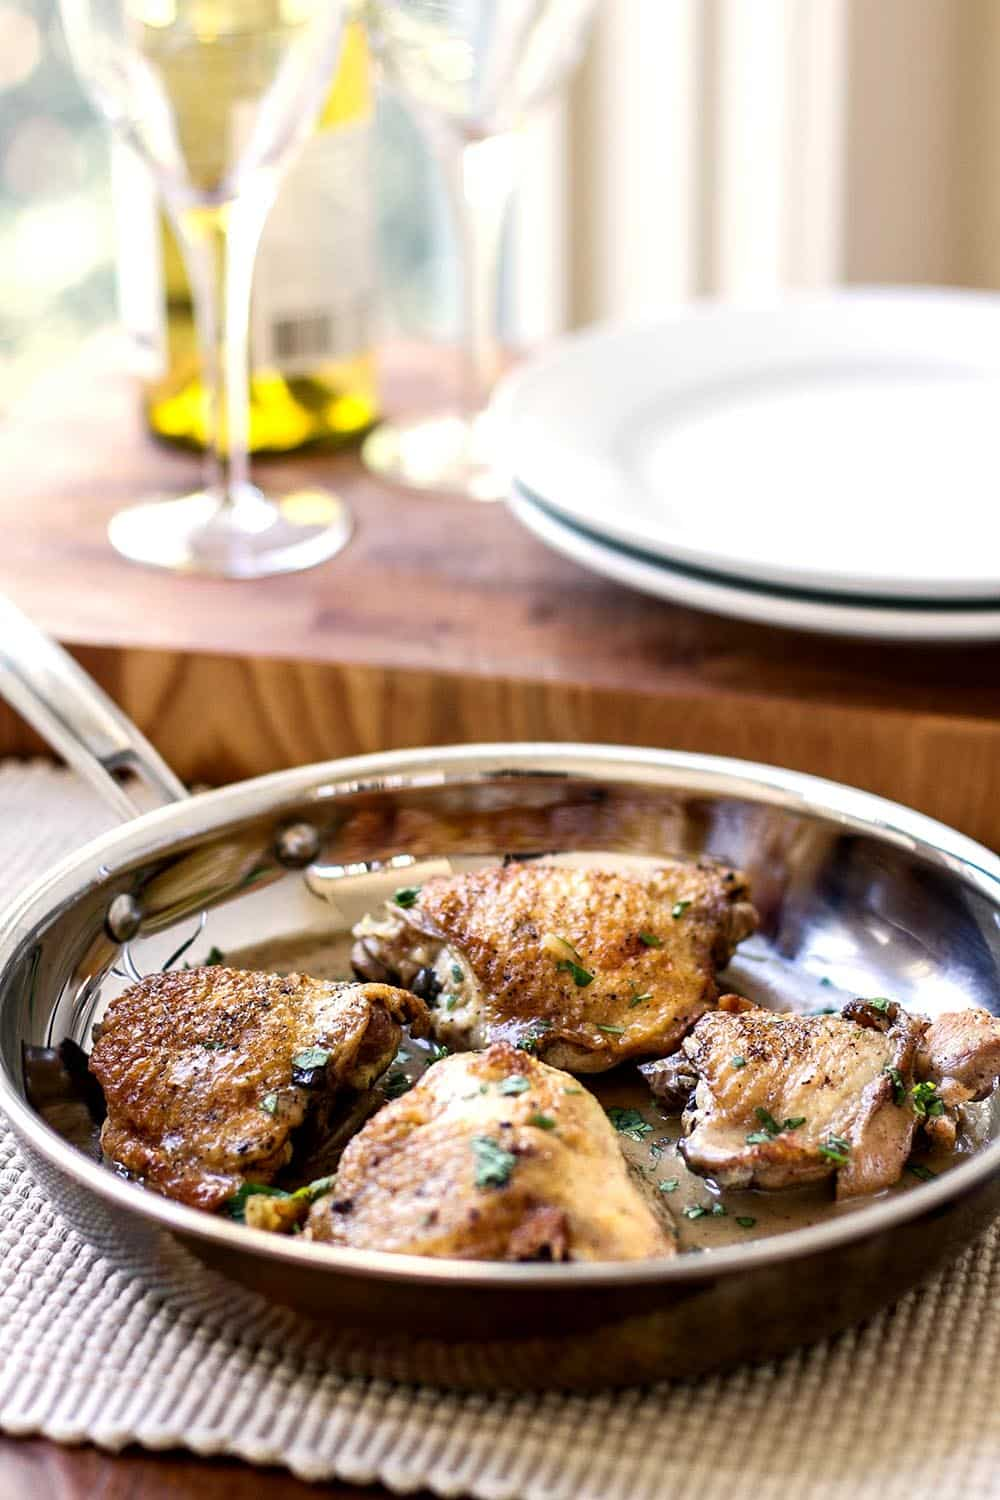 Chicken thighs in a skillet with rosemary wine sauce with white plates in the background